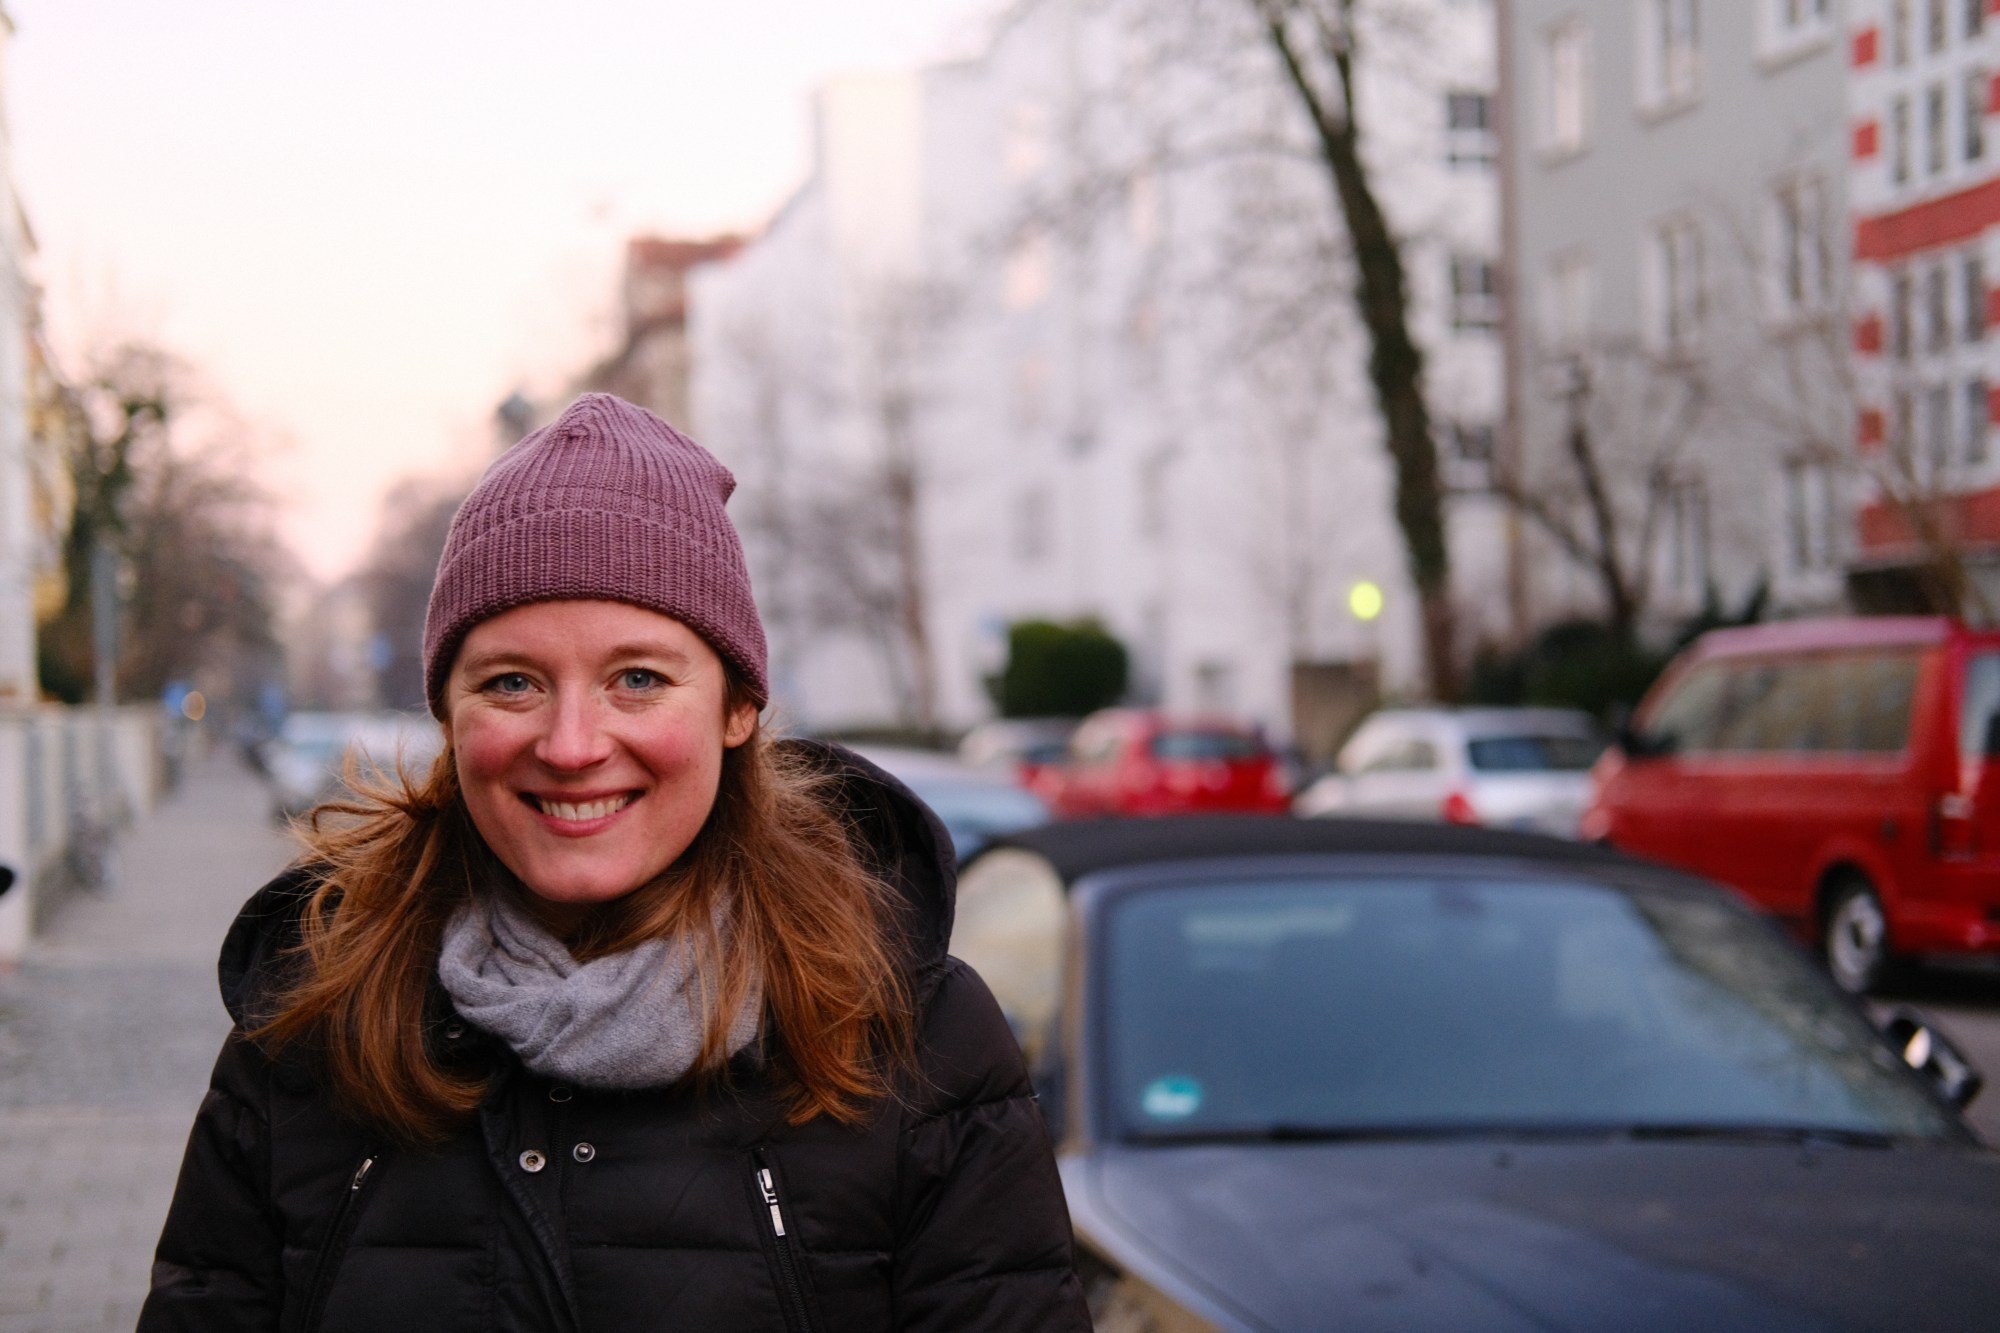 Julie in Schwabing